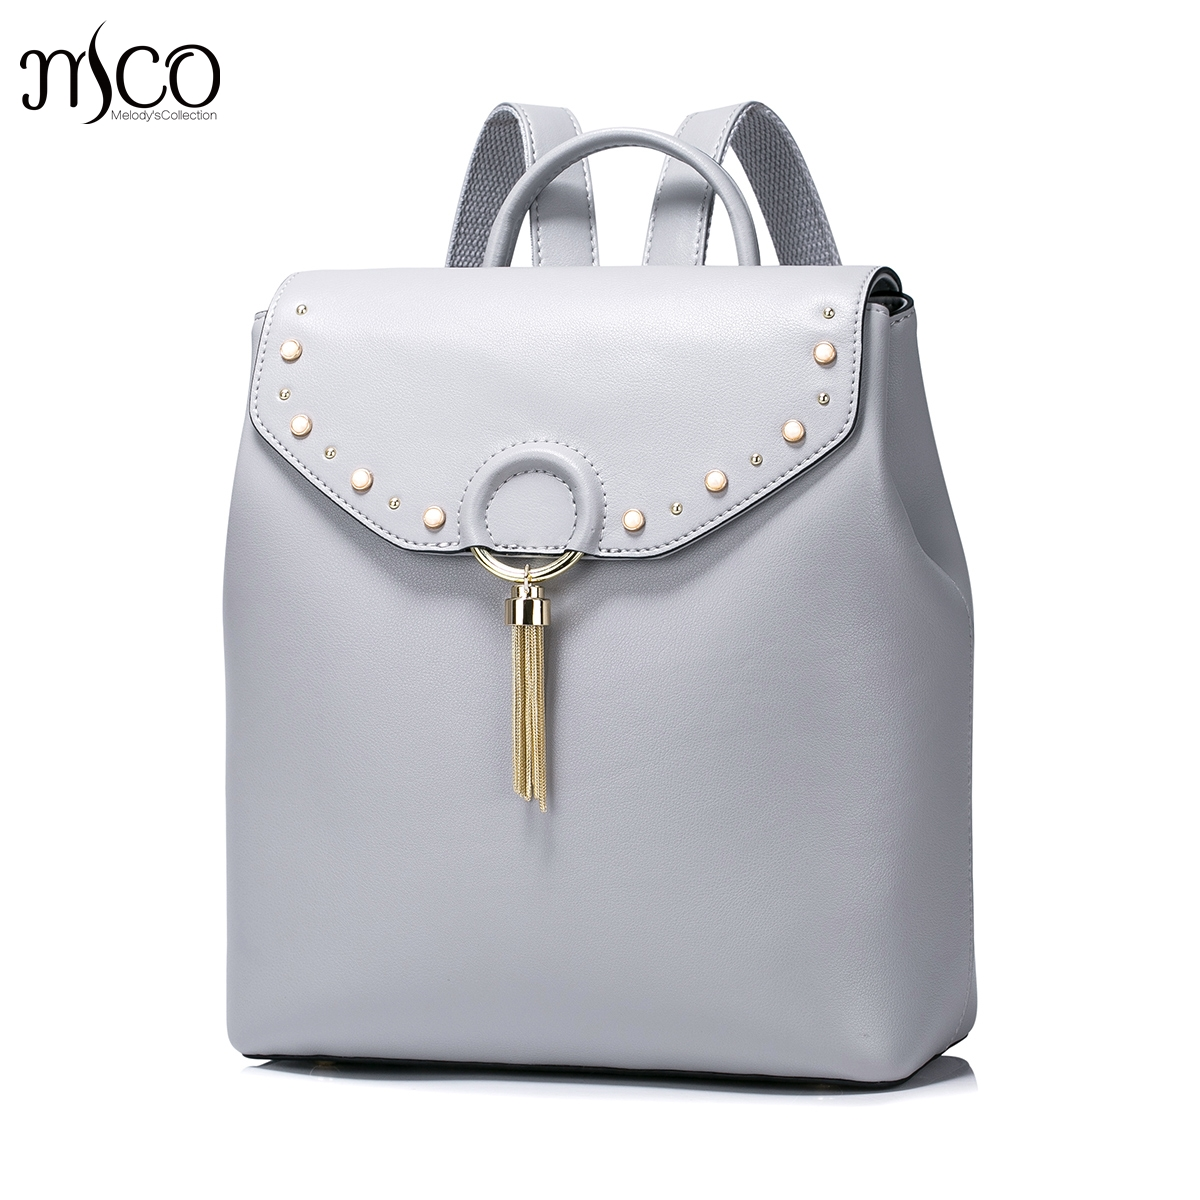 High Quality Fashion Genuine Leather Soft Backpack For Women Tassels Pearls Ring Diamond Shoulder Bags School bag Daypack Travel chrome kitchen sink faucet solid brass spring two spouts deck mount kitchen mixer tap